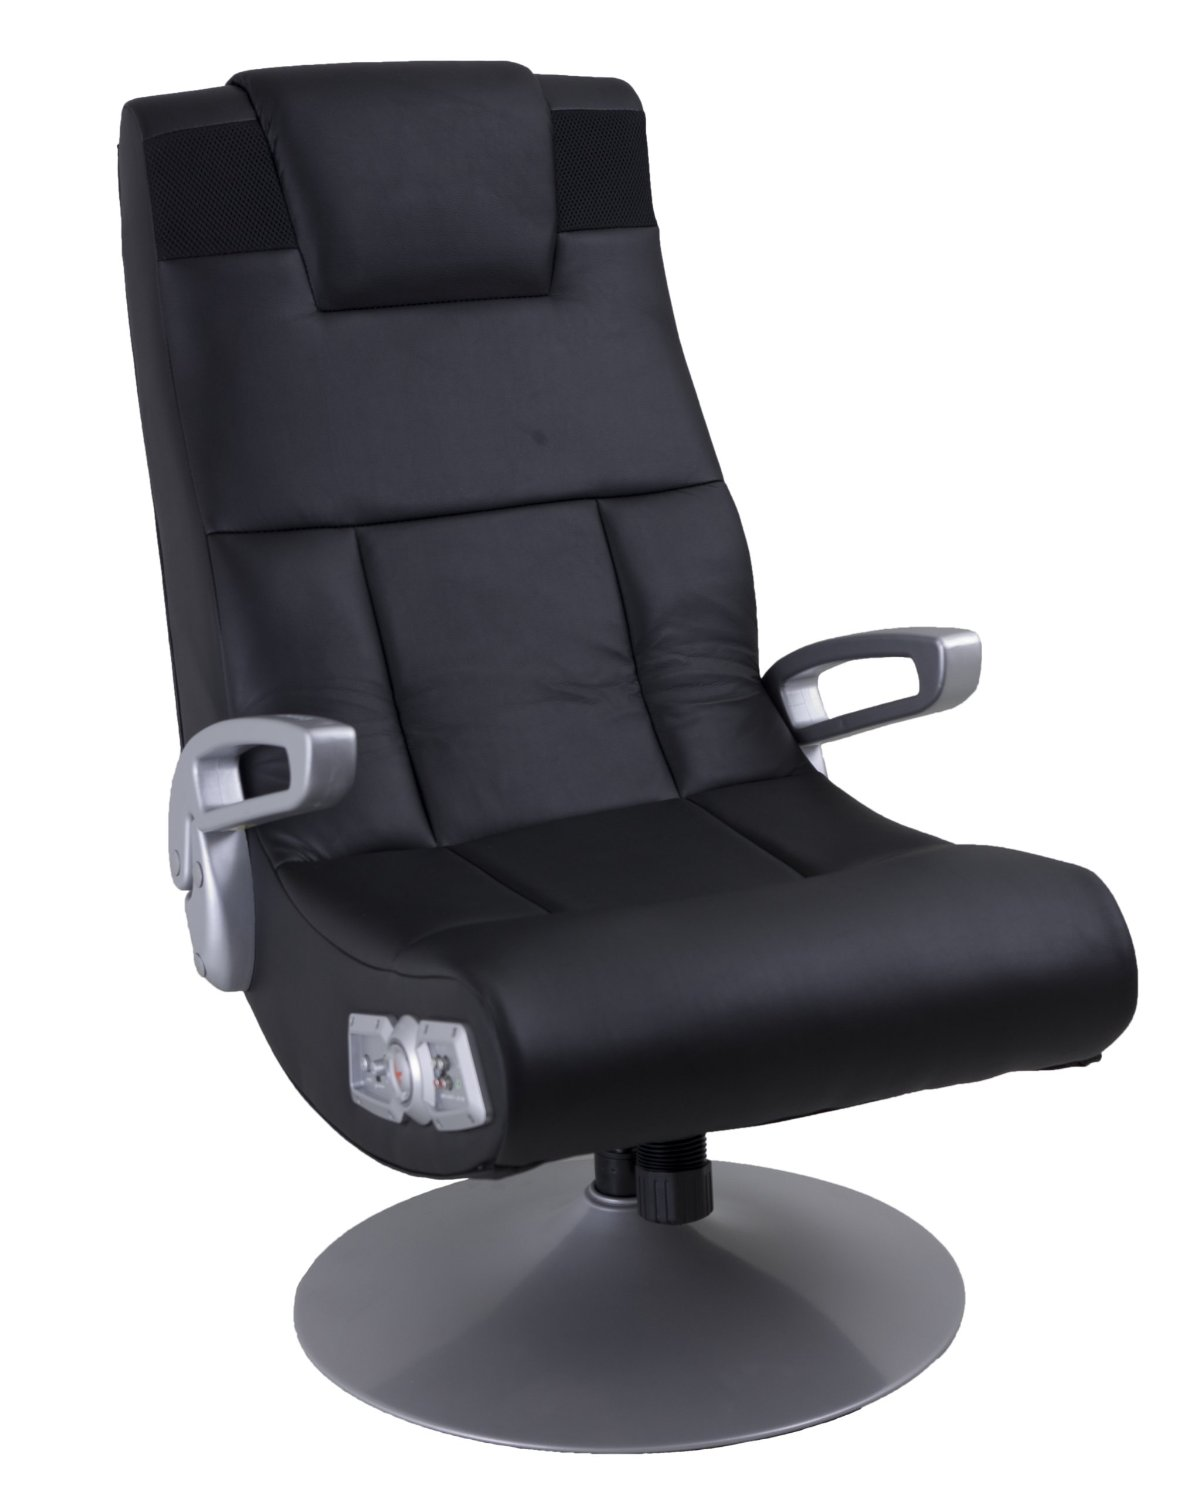 Gamer Chairs 5 Video Gaming Chairs For Racing Accessories Lists